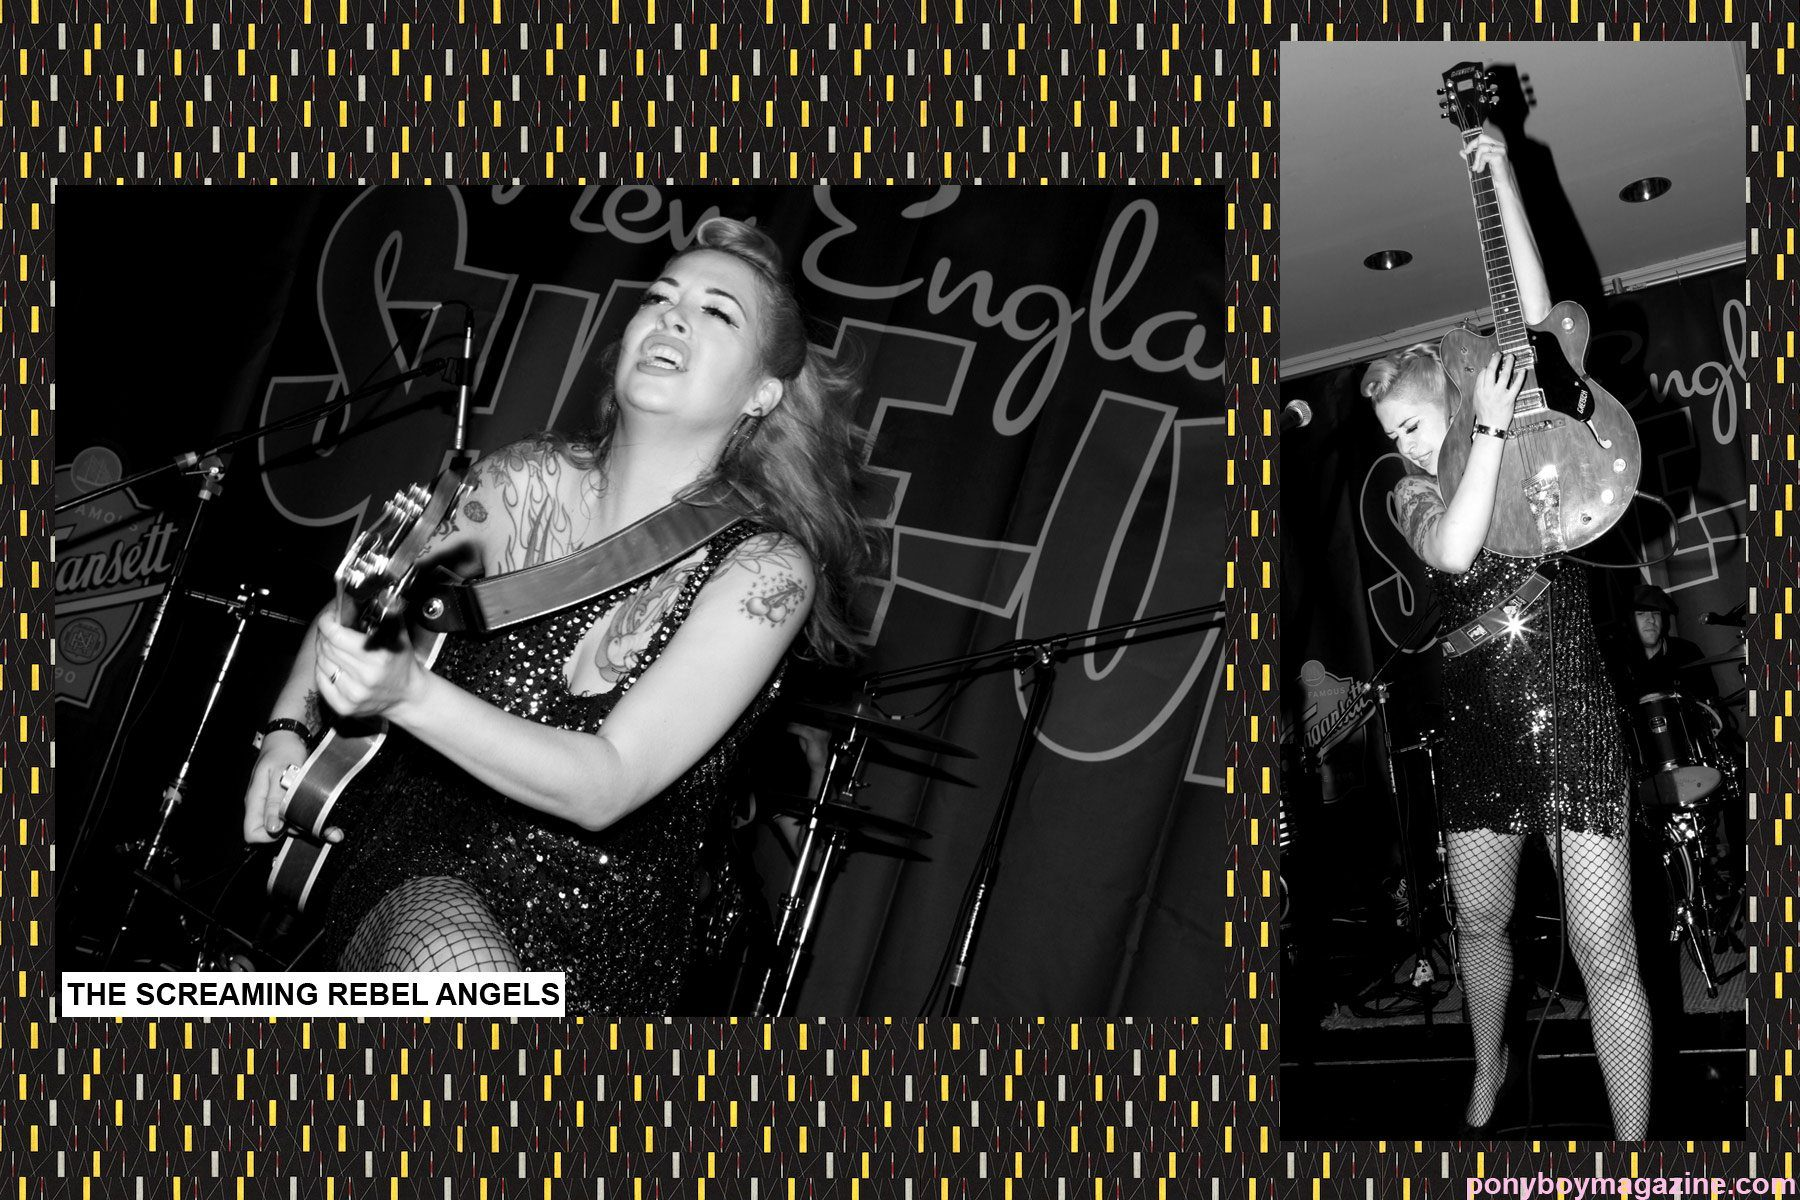 The beautiful Laura Rebel Angel at The New England Shake-Up rockabilly weekender, photographed by Alexander Thompson.